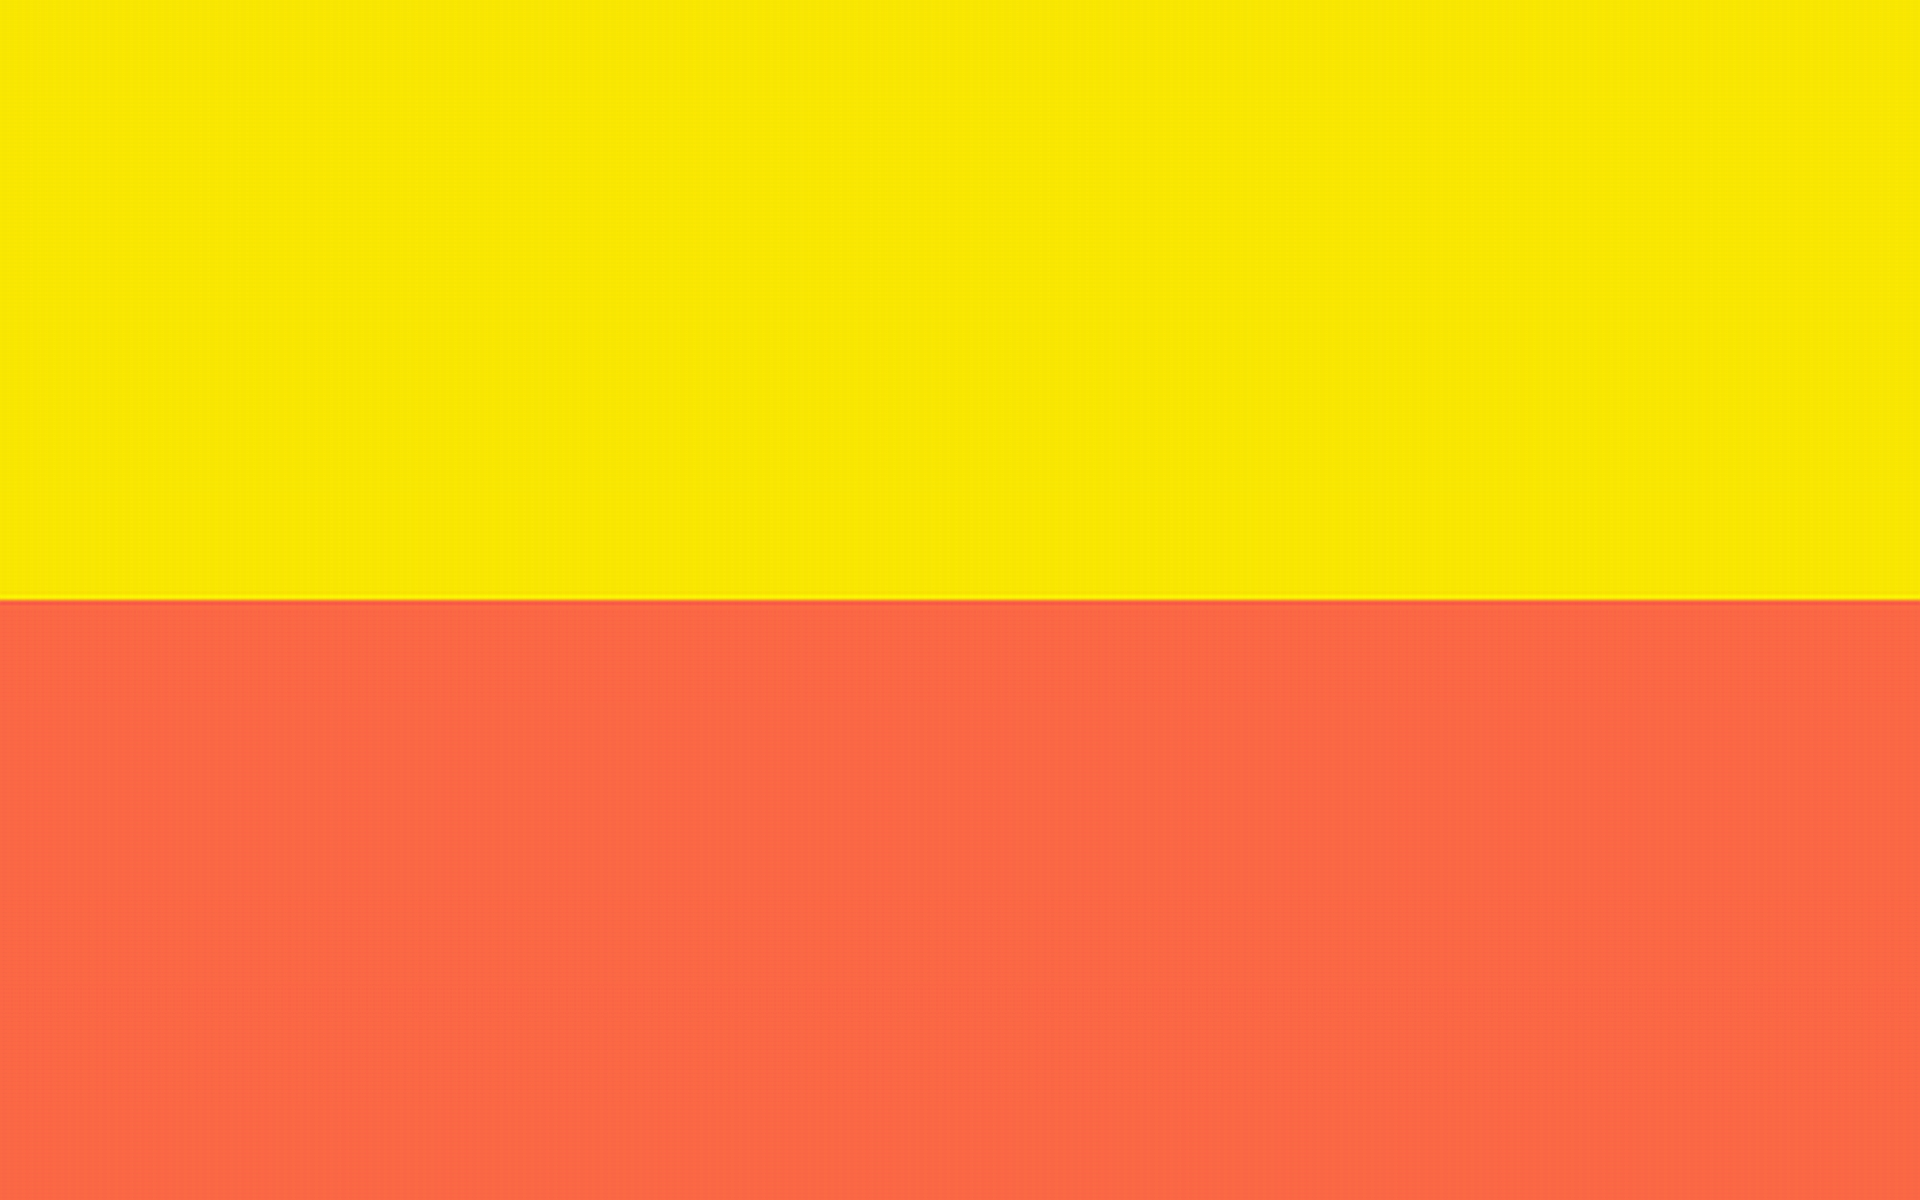 File:Yellow and orange horizontal 1920 × 1200.jpg - Wikimedia Commons